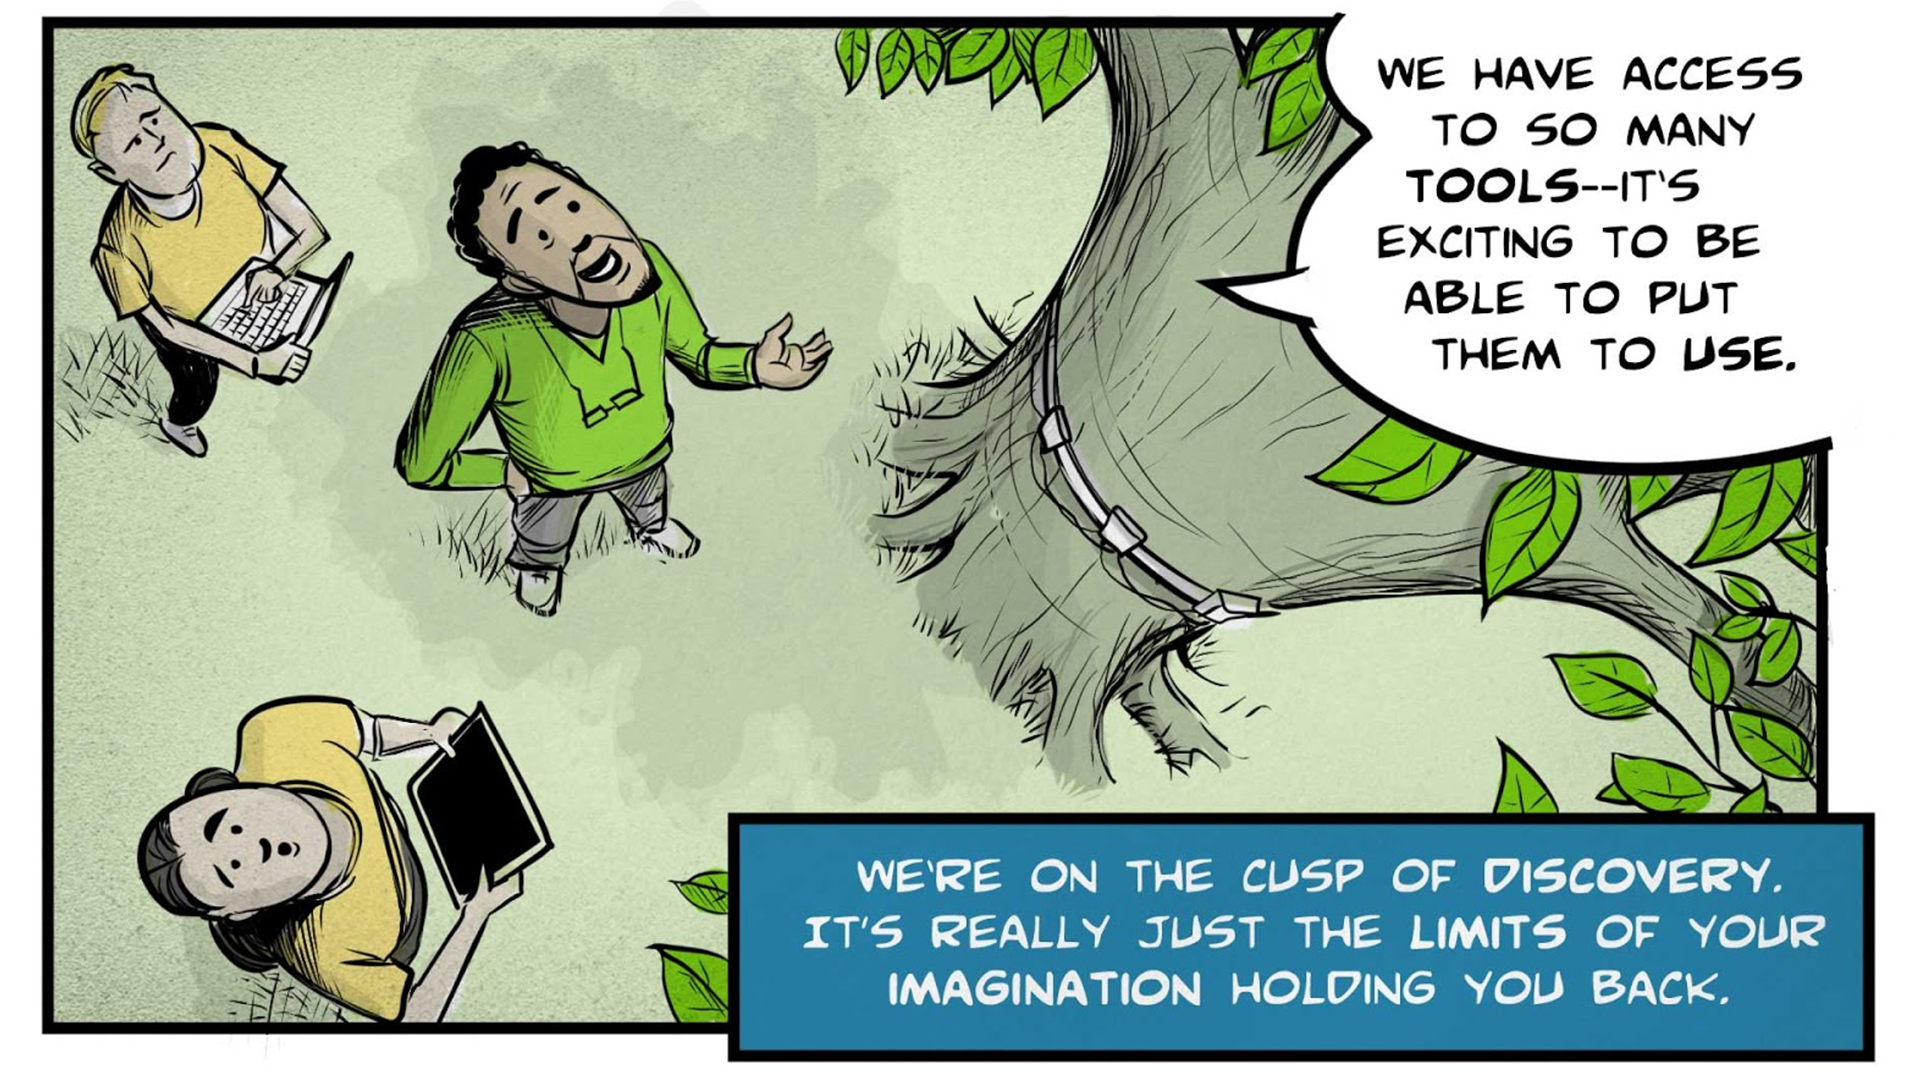 """Felix, the narrator, says, """"We're on the cusp of discovery. It's really just the limits of your imagination holding you back."""" He and two other people stand looking upward at a tree with a band around its trunk. Two of them are holding measurement devices. Felix says, """"We have access to so many tools--it's exciting to be able to put them to use."""""""